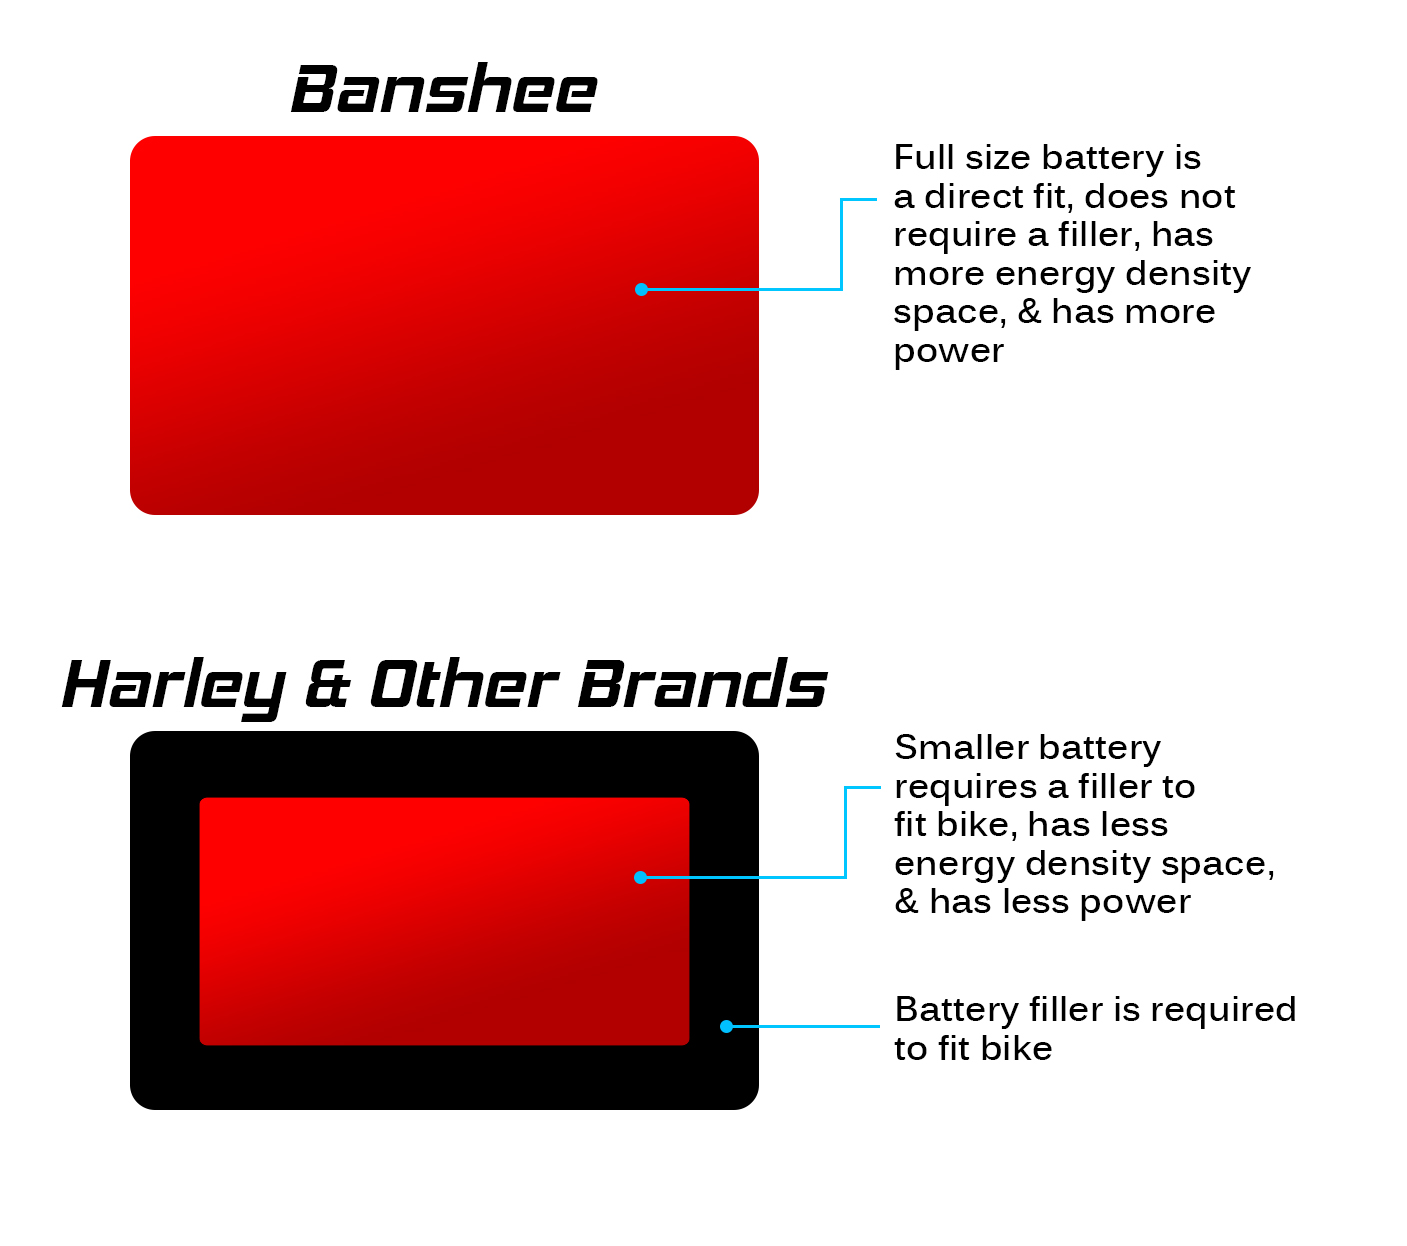 Banshee 20L-BS LIFEPO4, Lithium ION Battery Exact Fit replacement for Harley 66000174, 66000229